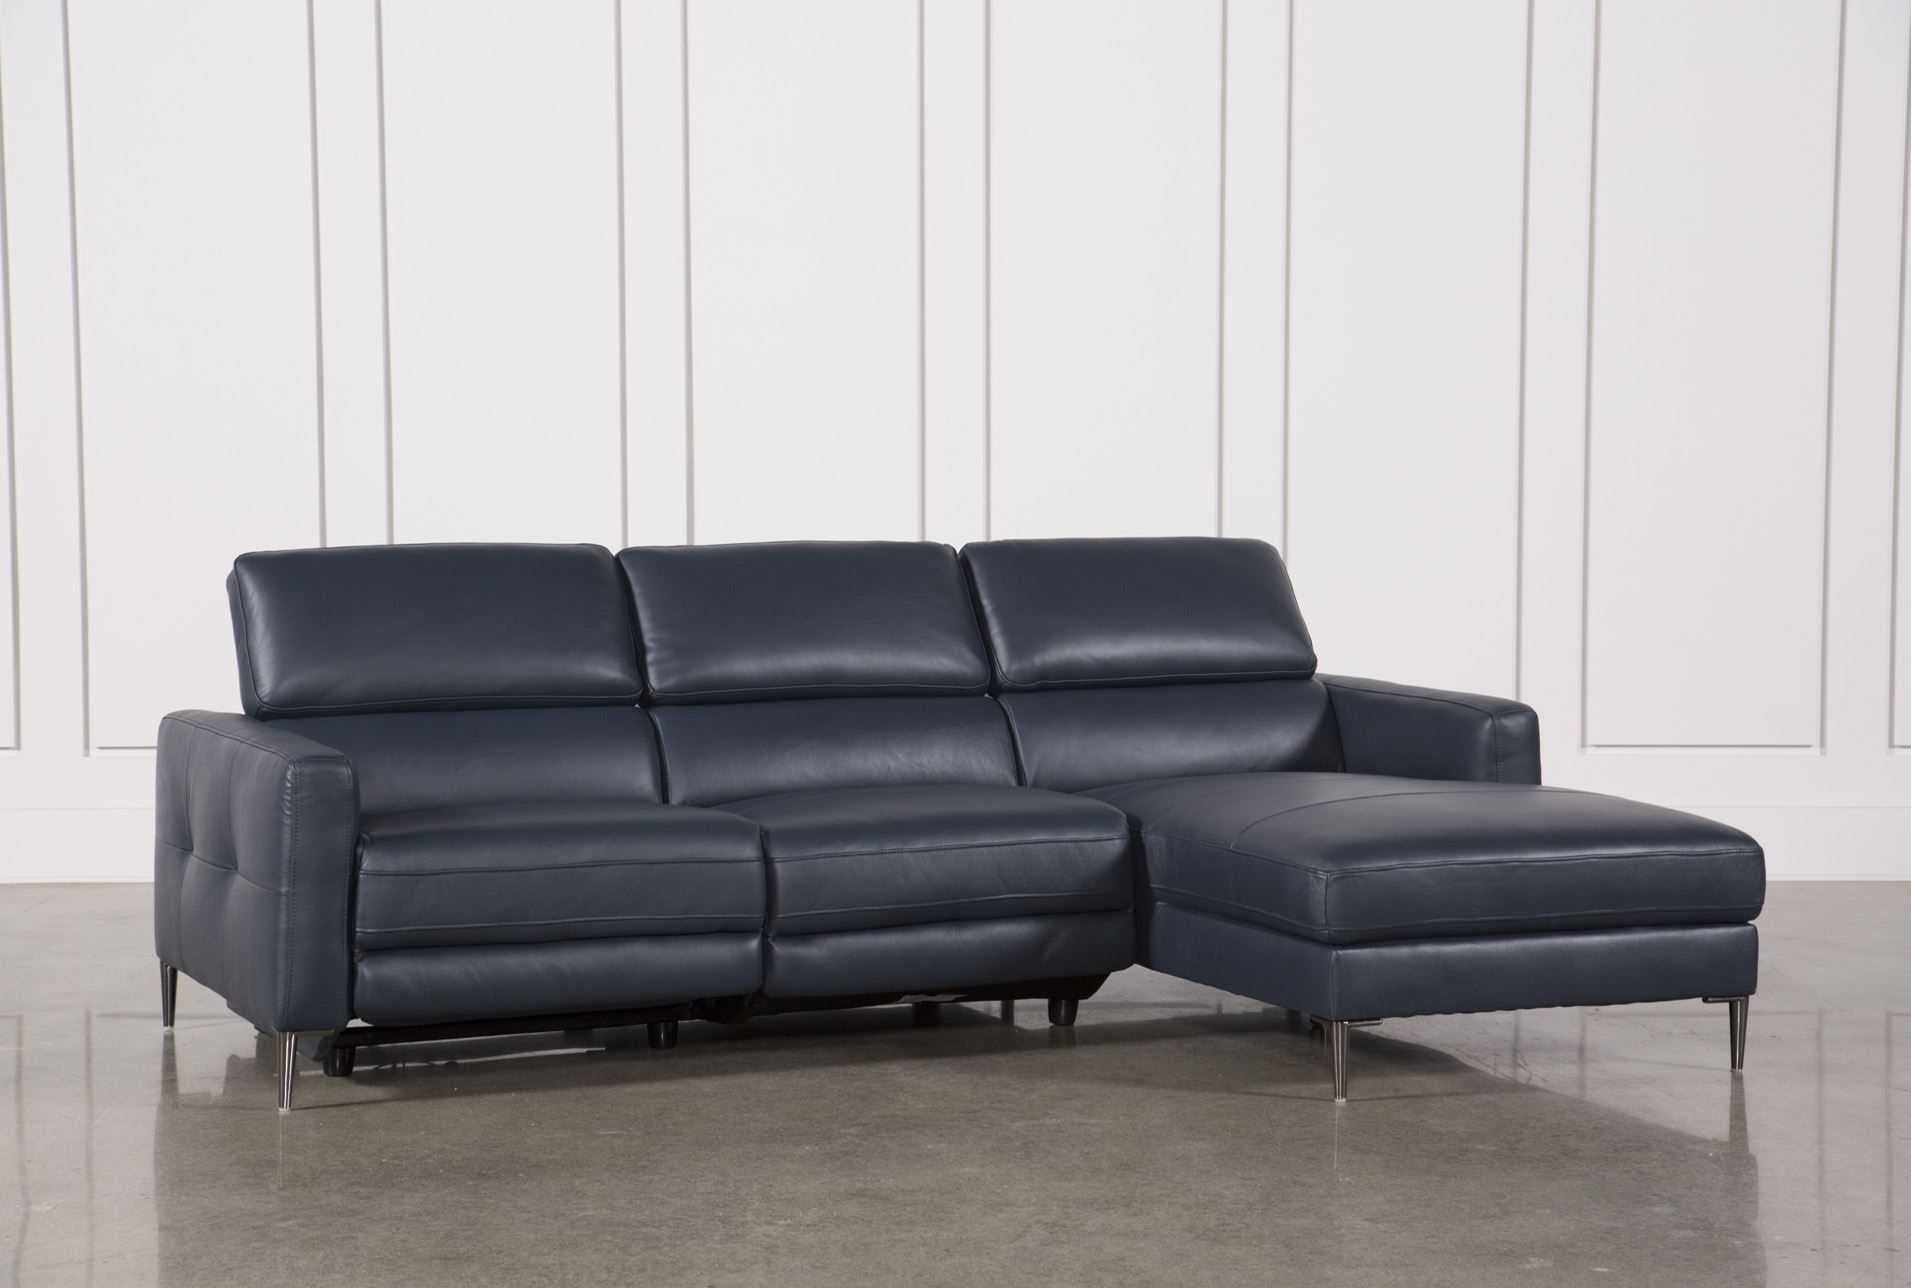 Tara Blue 2 Piece Right Facing Chaise Sofa | Chaise Sofa, Living in Tatum Dark Grey 2 Piece Sectionals With Laf Chaise (Image 25 of 30)